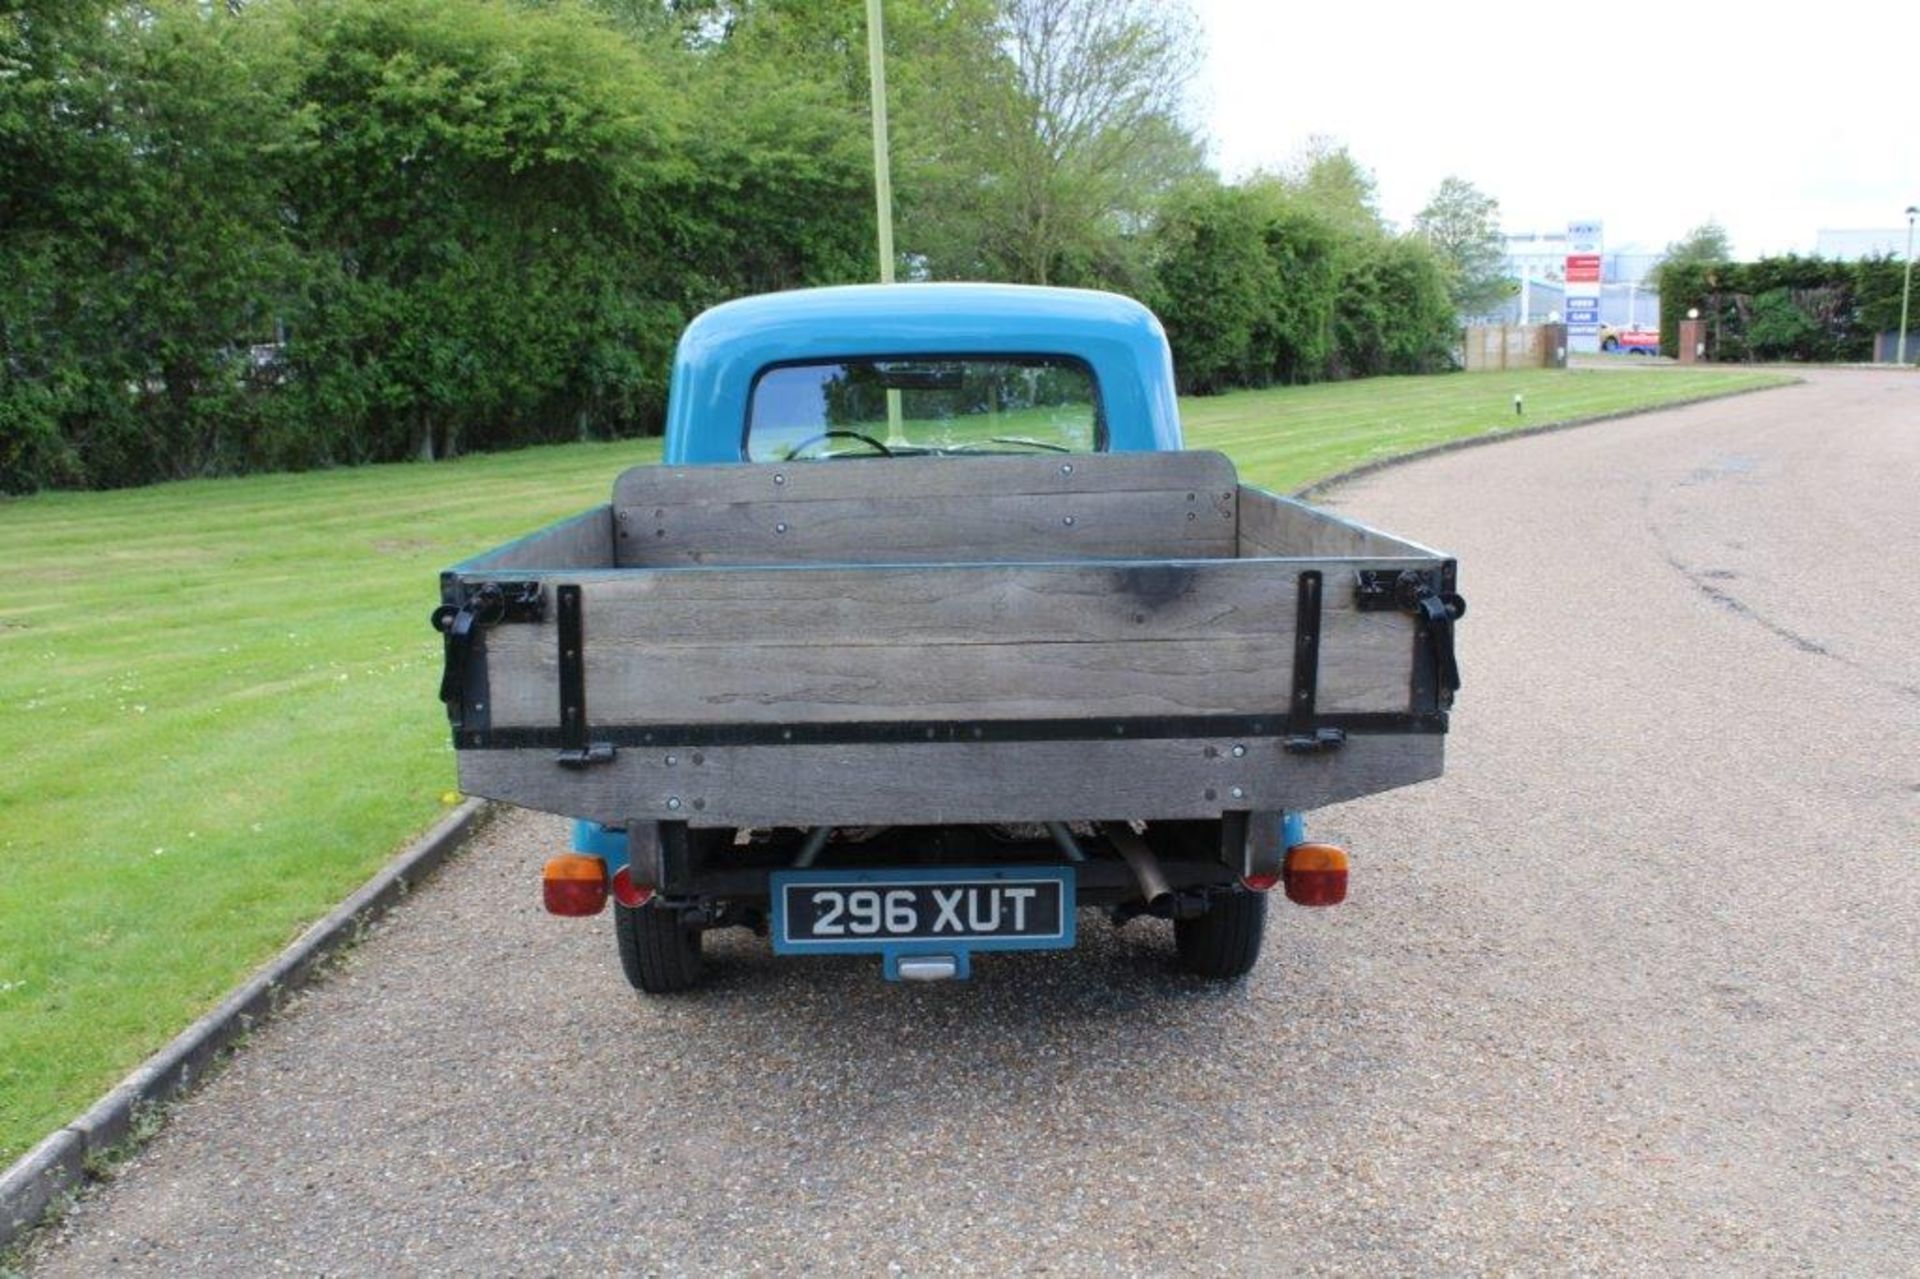 1961 Volvo P 21114 A Pick-Up LHD - Image 7 of 25